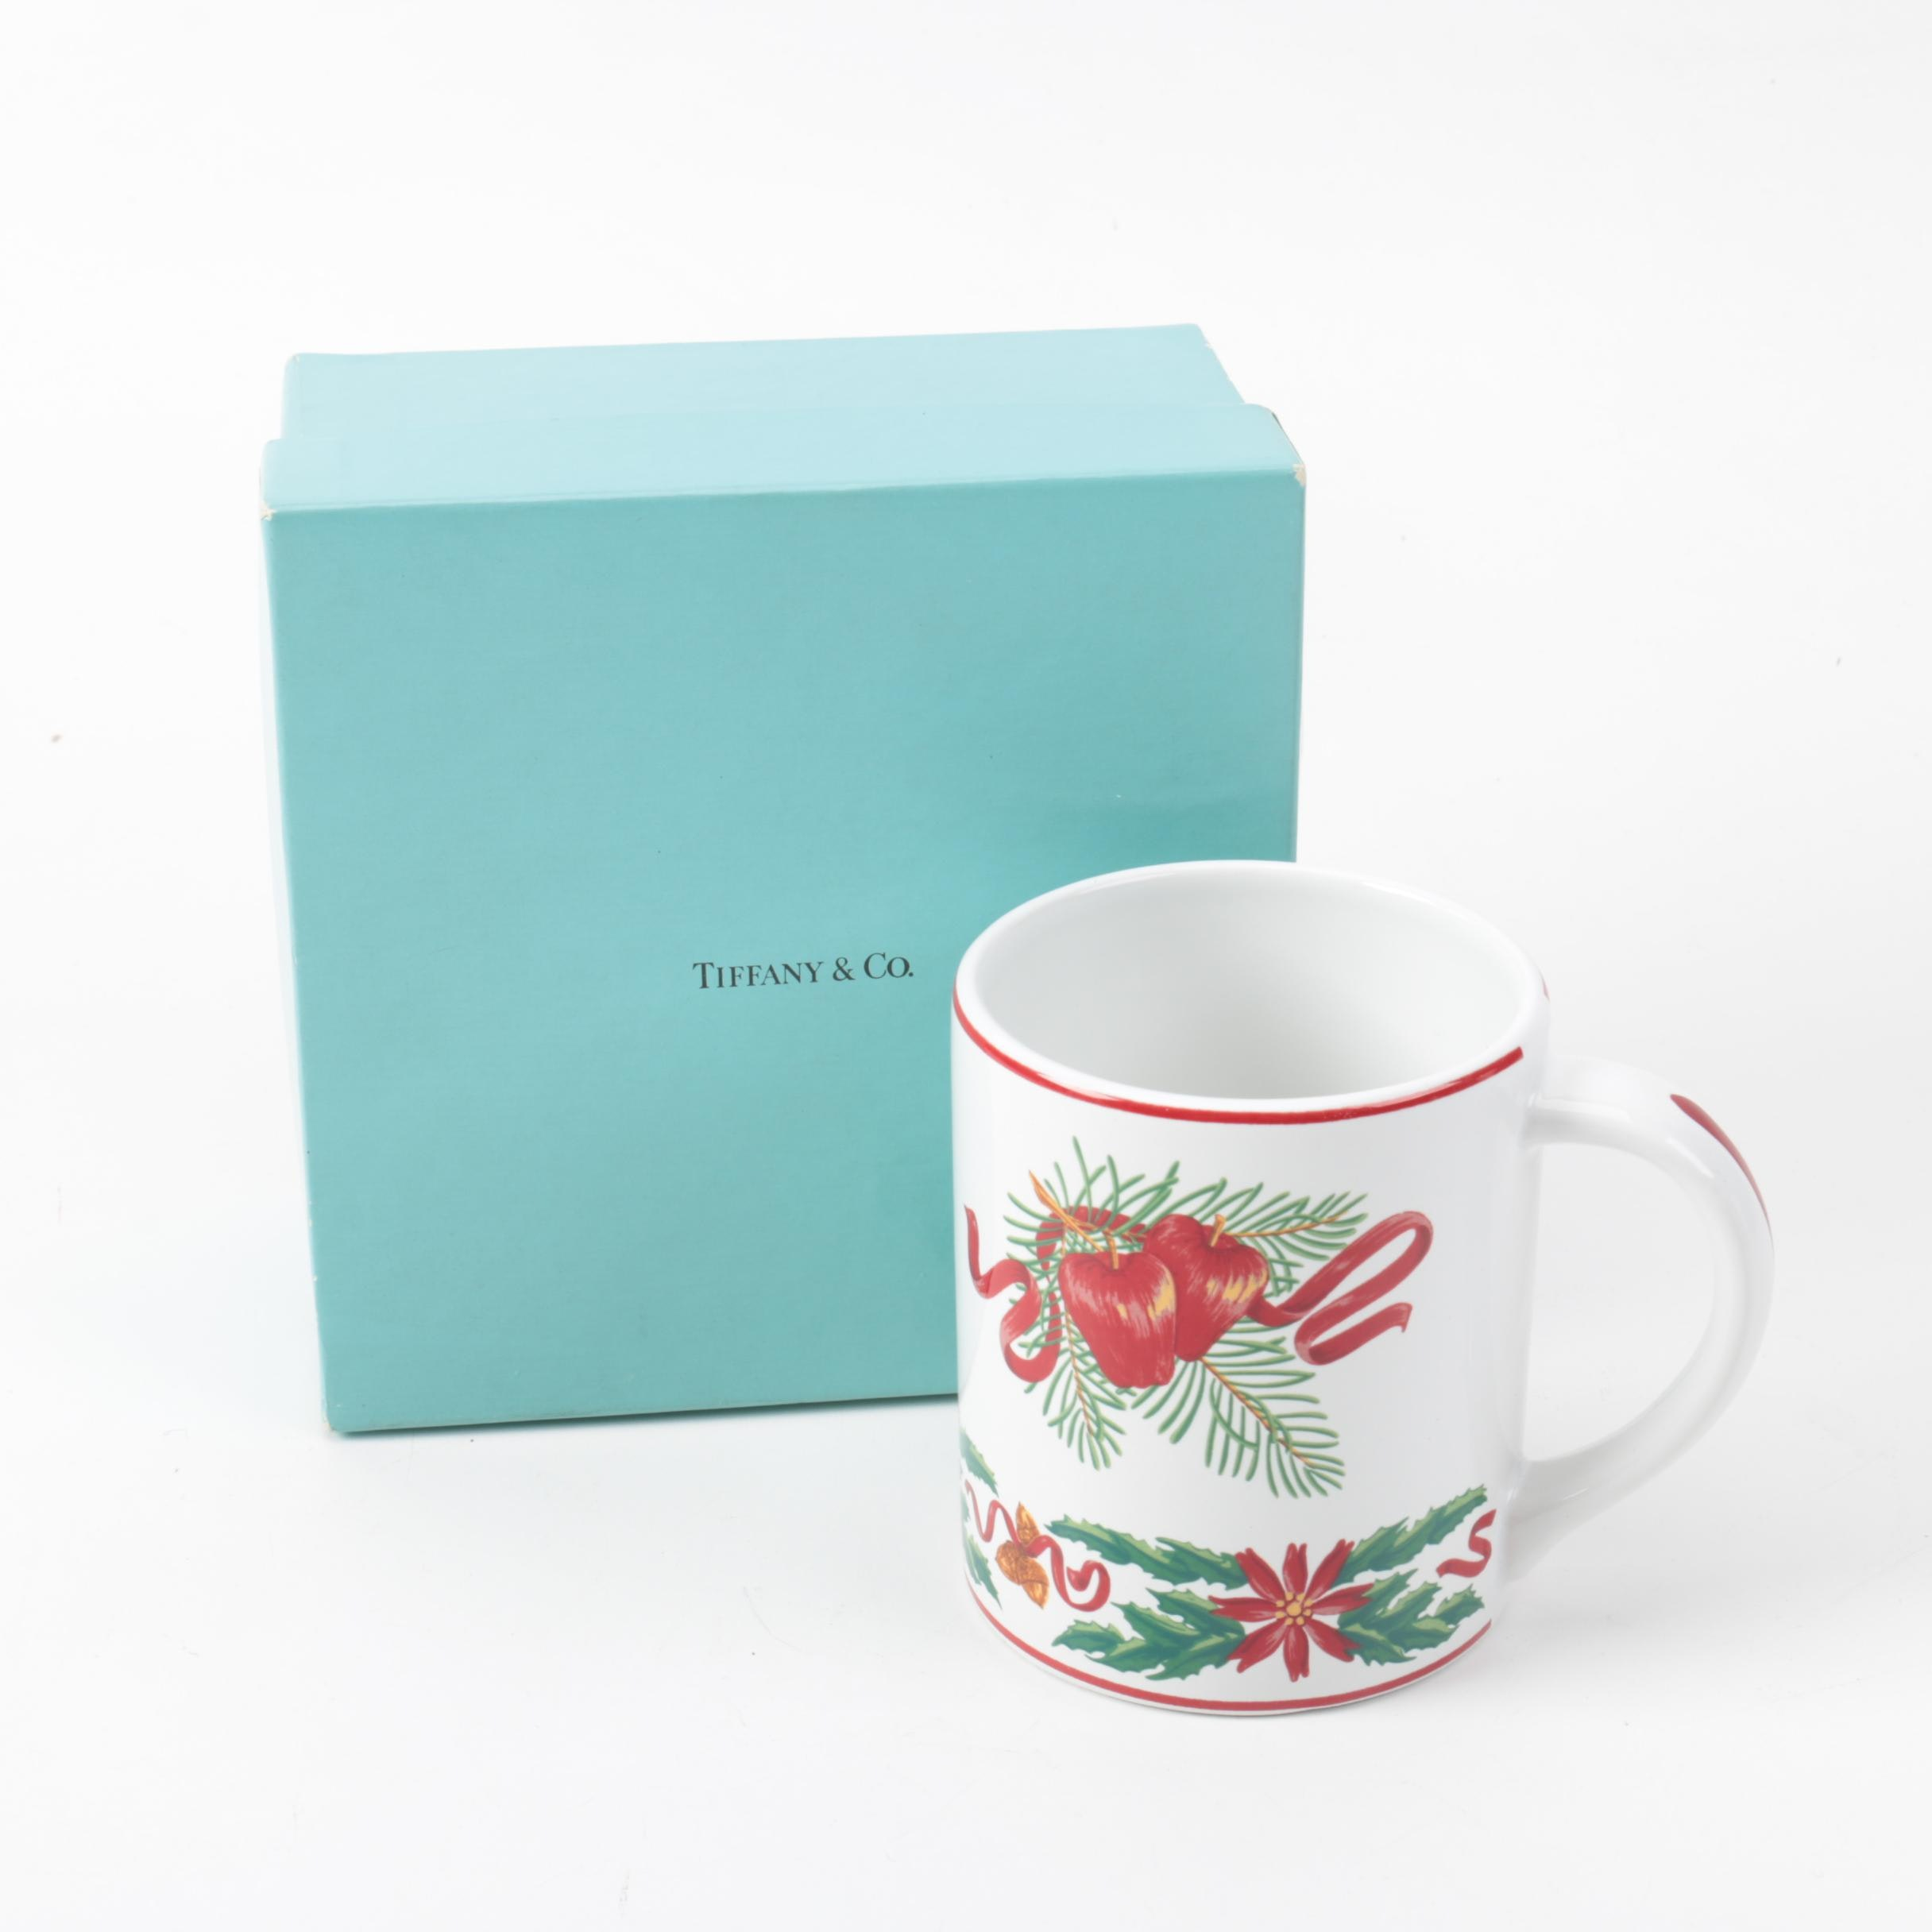 "Tiffany & Co. ""Tiffany Holly"" Ceramic Mug"